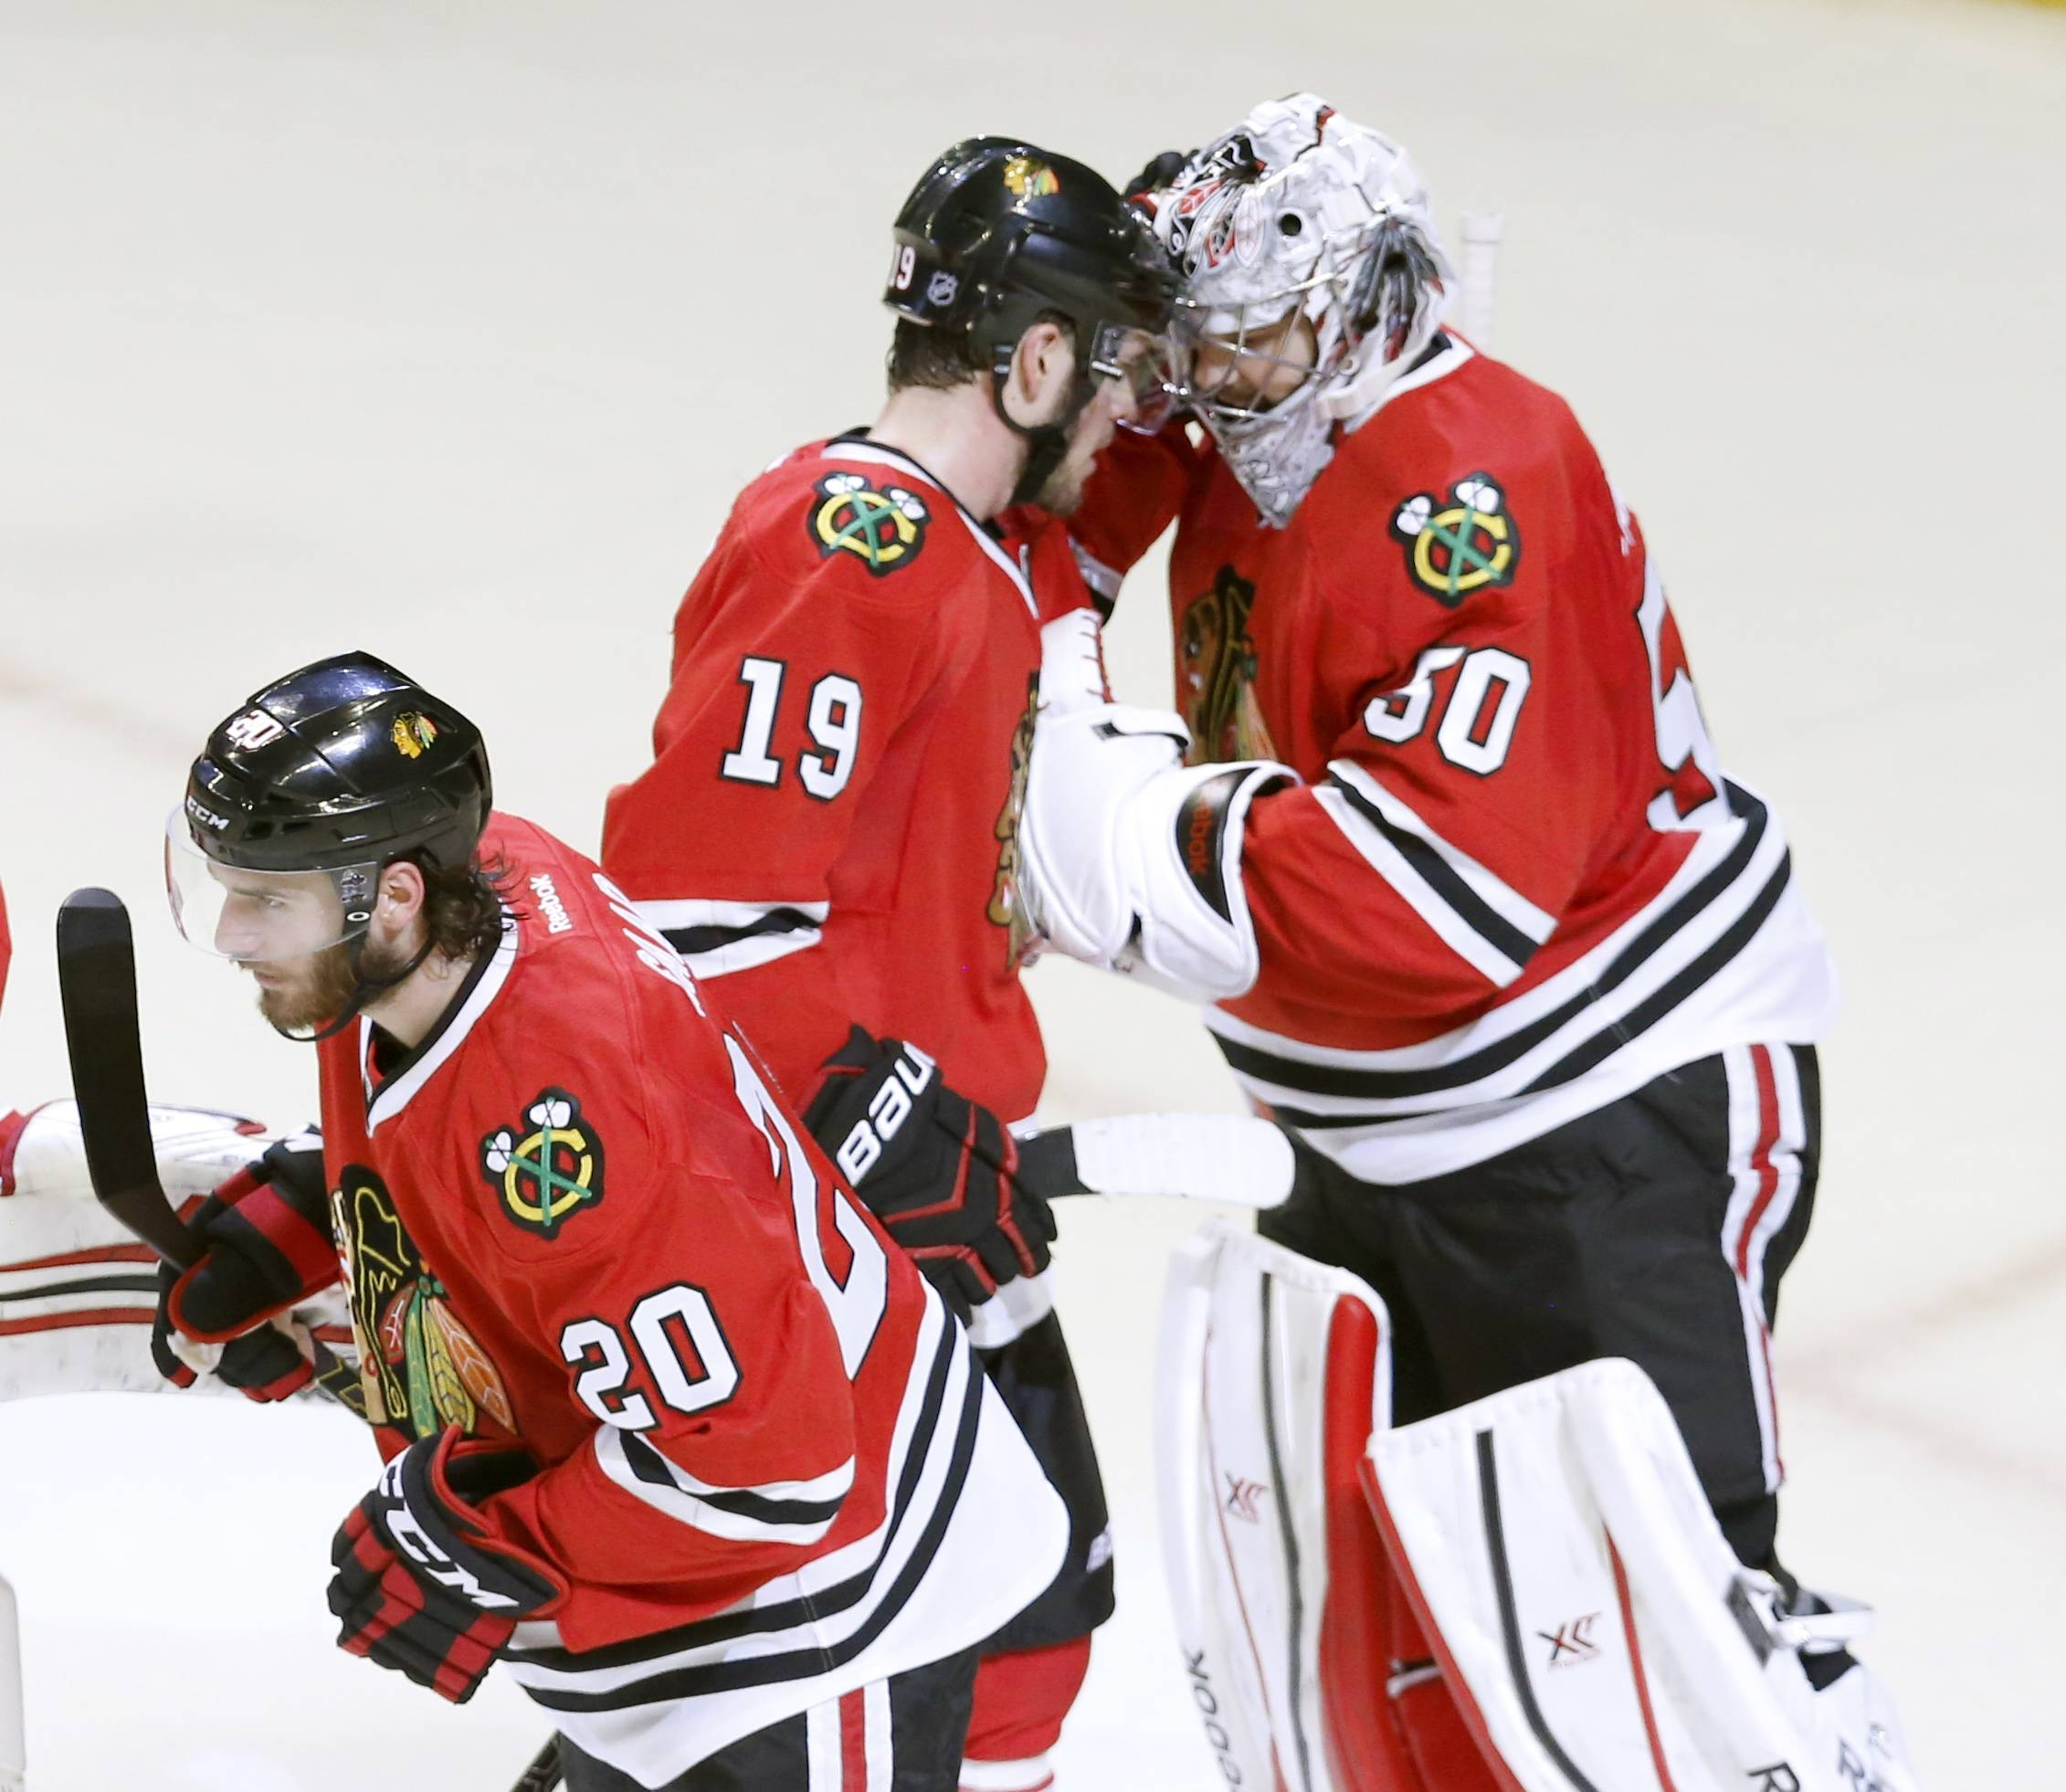 Chicago Blackhawks goalie Corey Crawford, right, celebrates the Blackhawks' 3-1 win over the Los Angeles Kings with Jonathan Toews (19) and Brandon Saad (20) after Game 1 of the Western Conference finals in the NHL hockey Stanley Cup playoffs in Chicago on Sunday, May 18, 2014. The Blackhawks won 3-1.